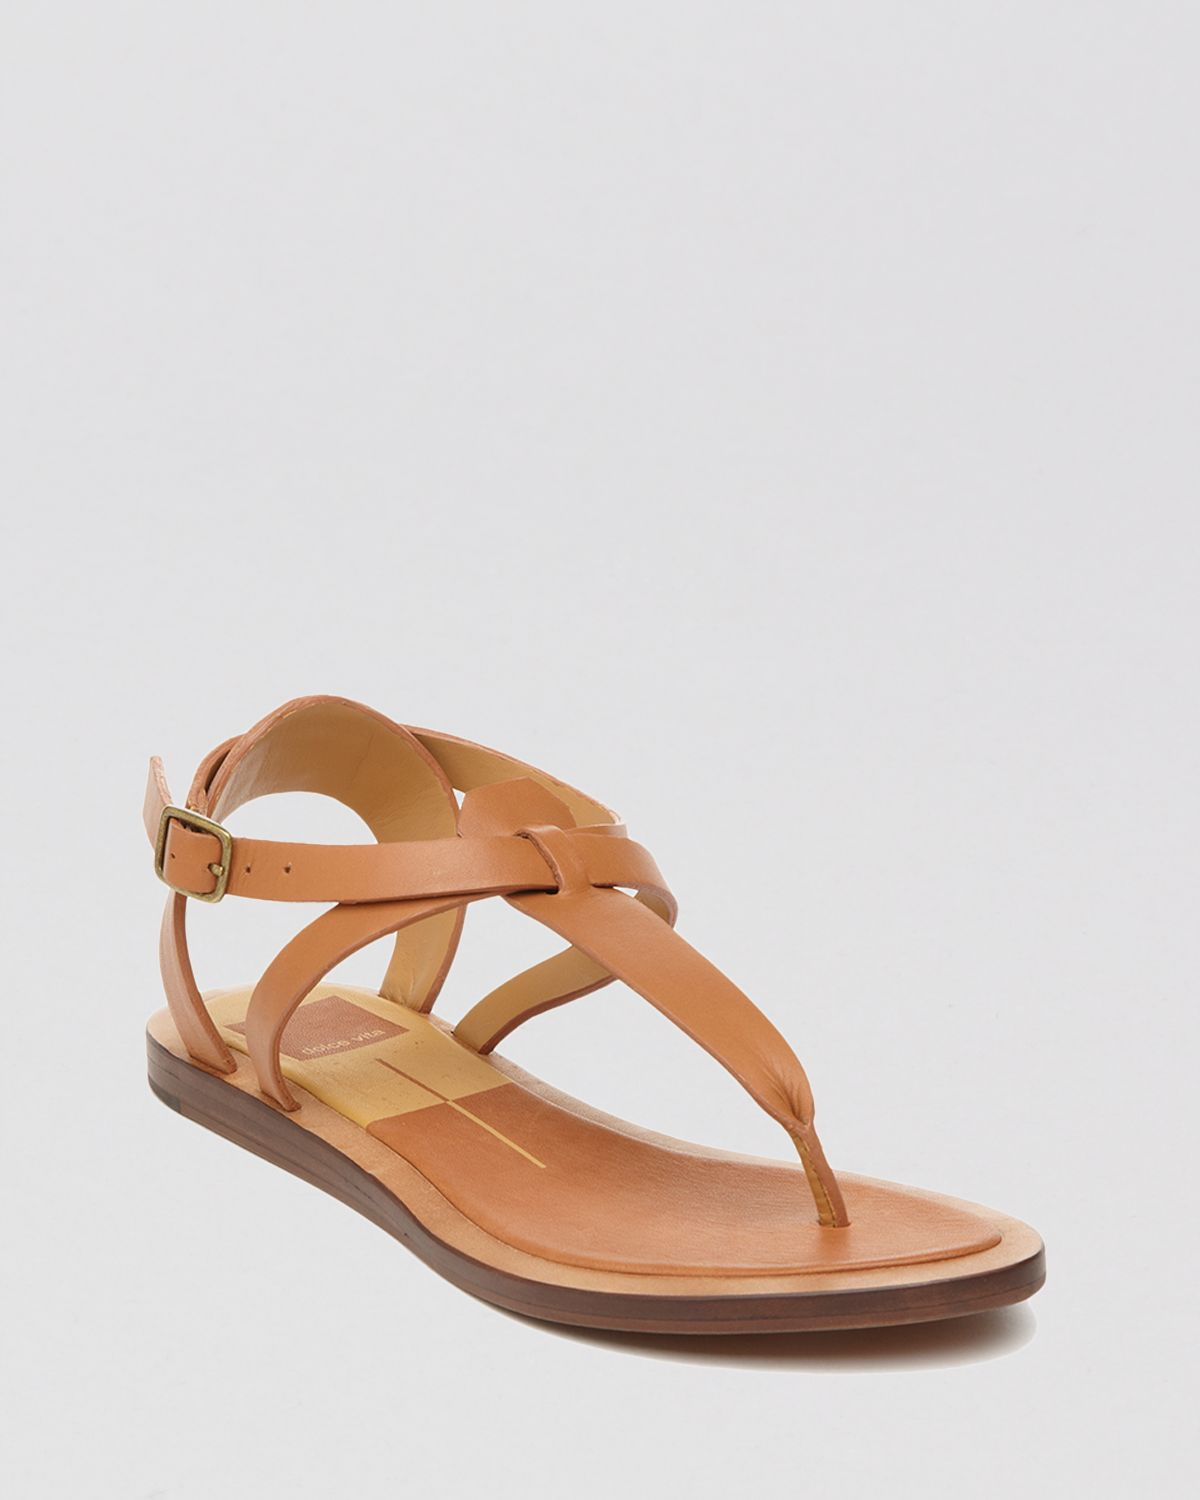 Gallery - Dolce Vita Flat Thong Sandals - Fabia In Brown Lyst